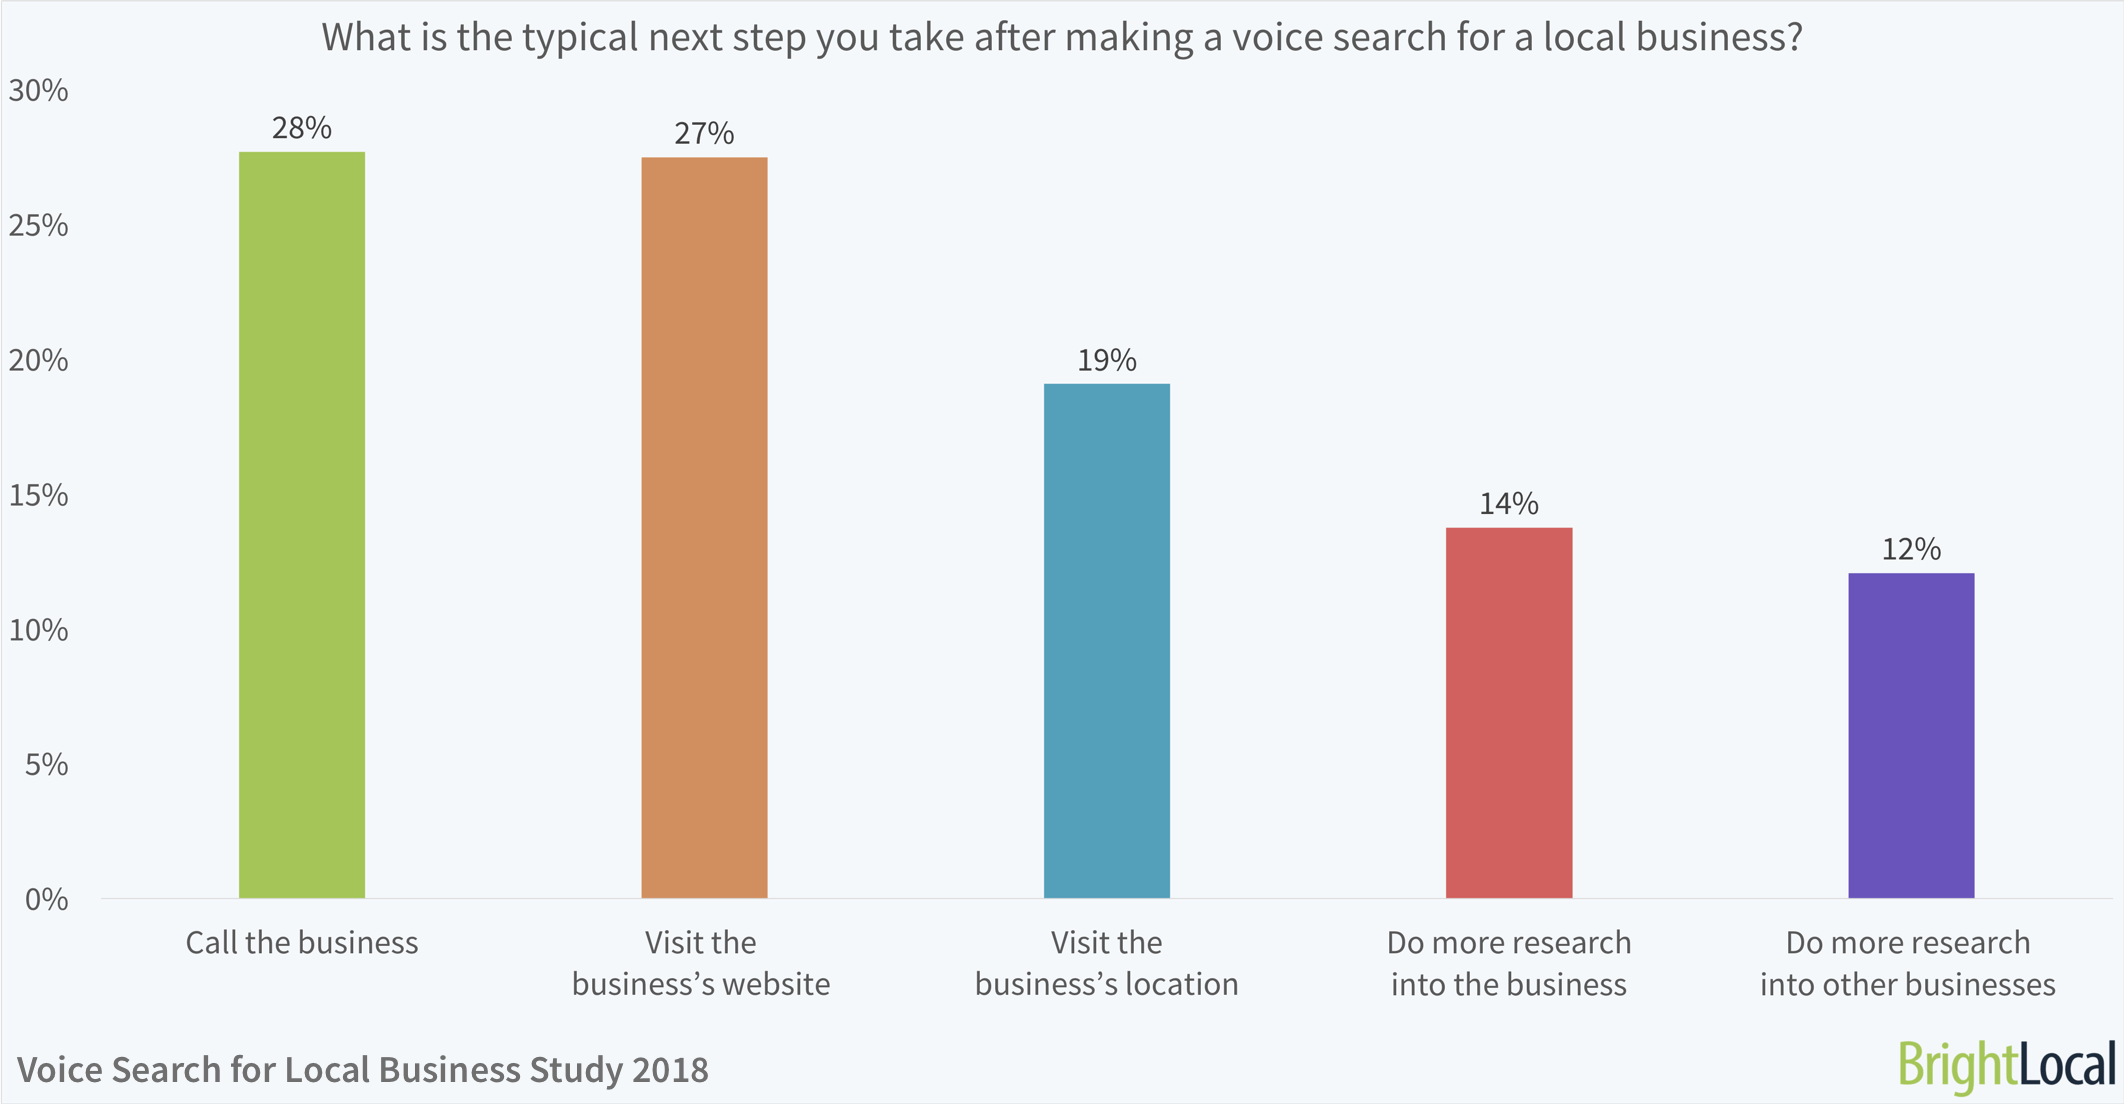 What is the typical next step you take after making a voice search for a local business? | BrightLocal Voice Search for Local Business Study